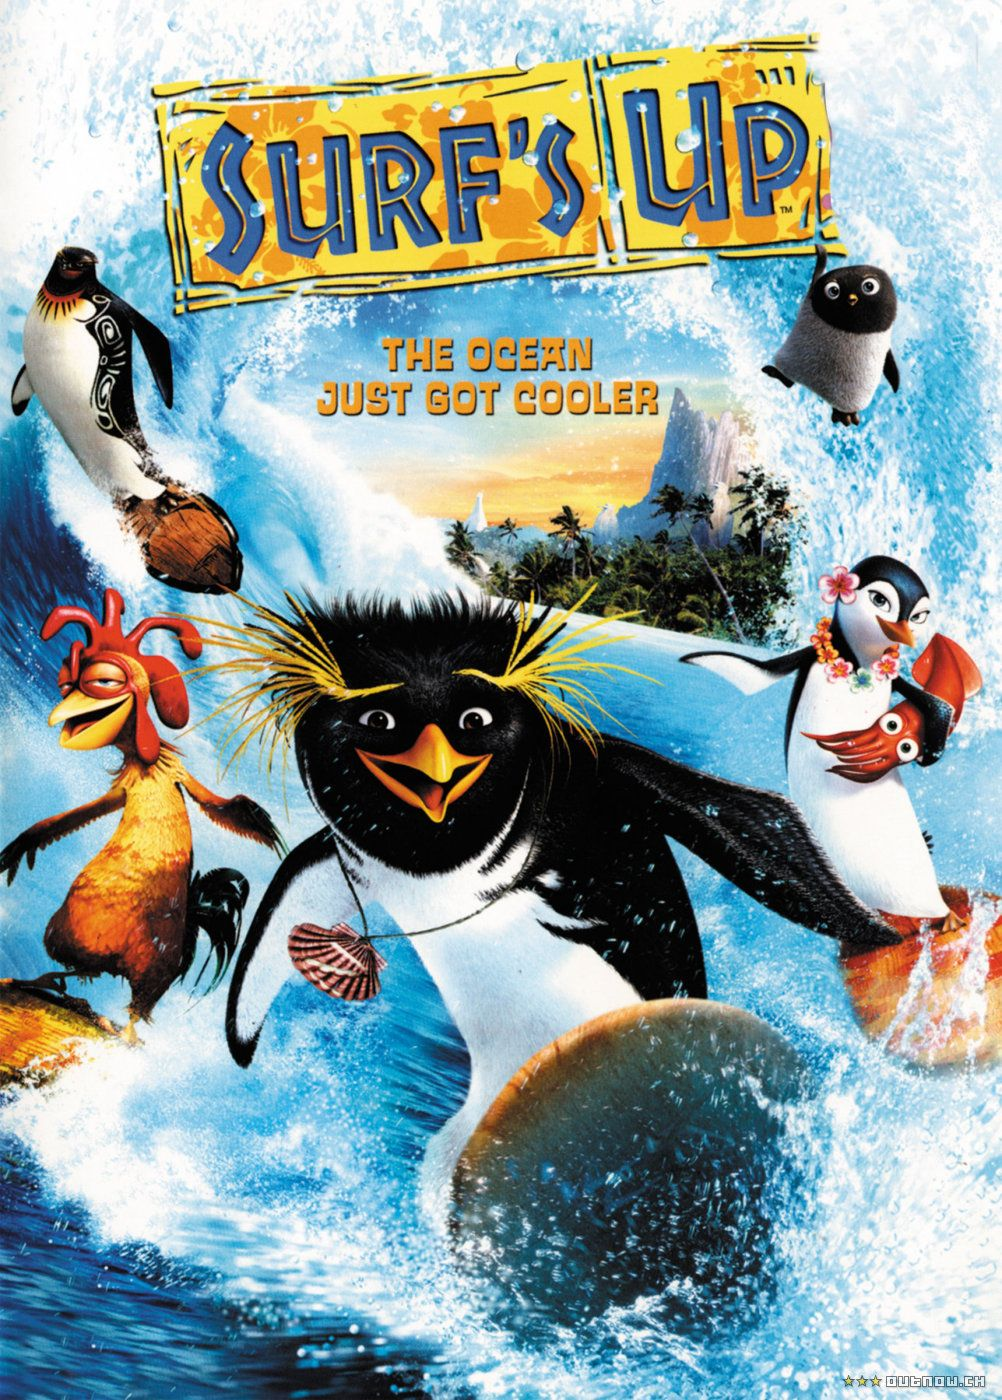 Surf's Up [2007] directed by Ash Brannon and Chris Buck